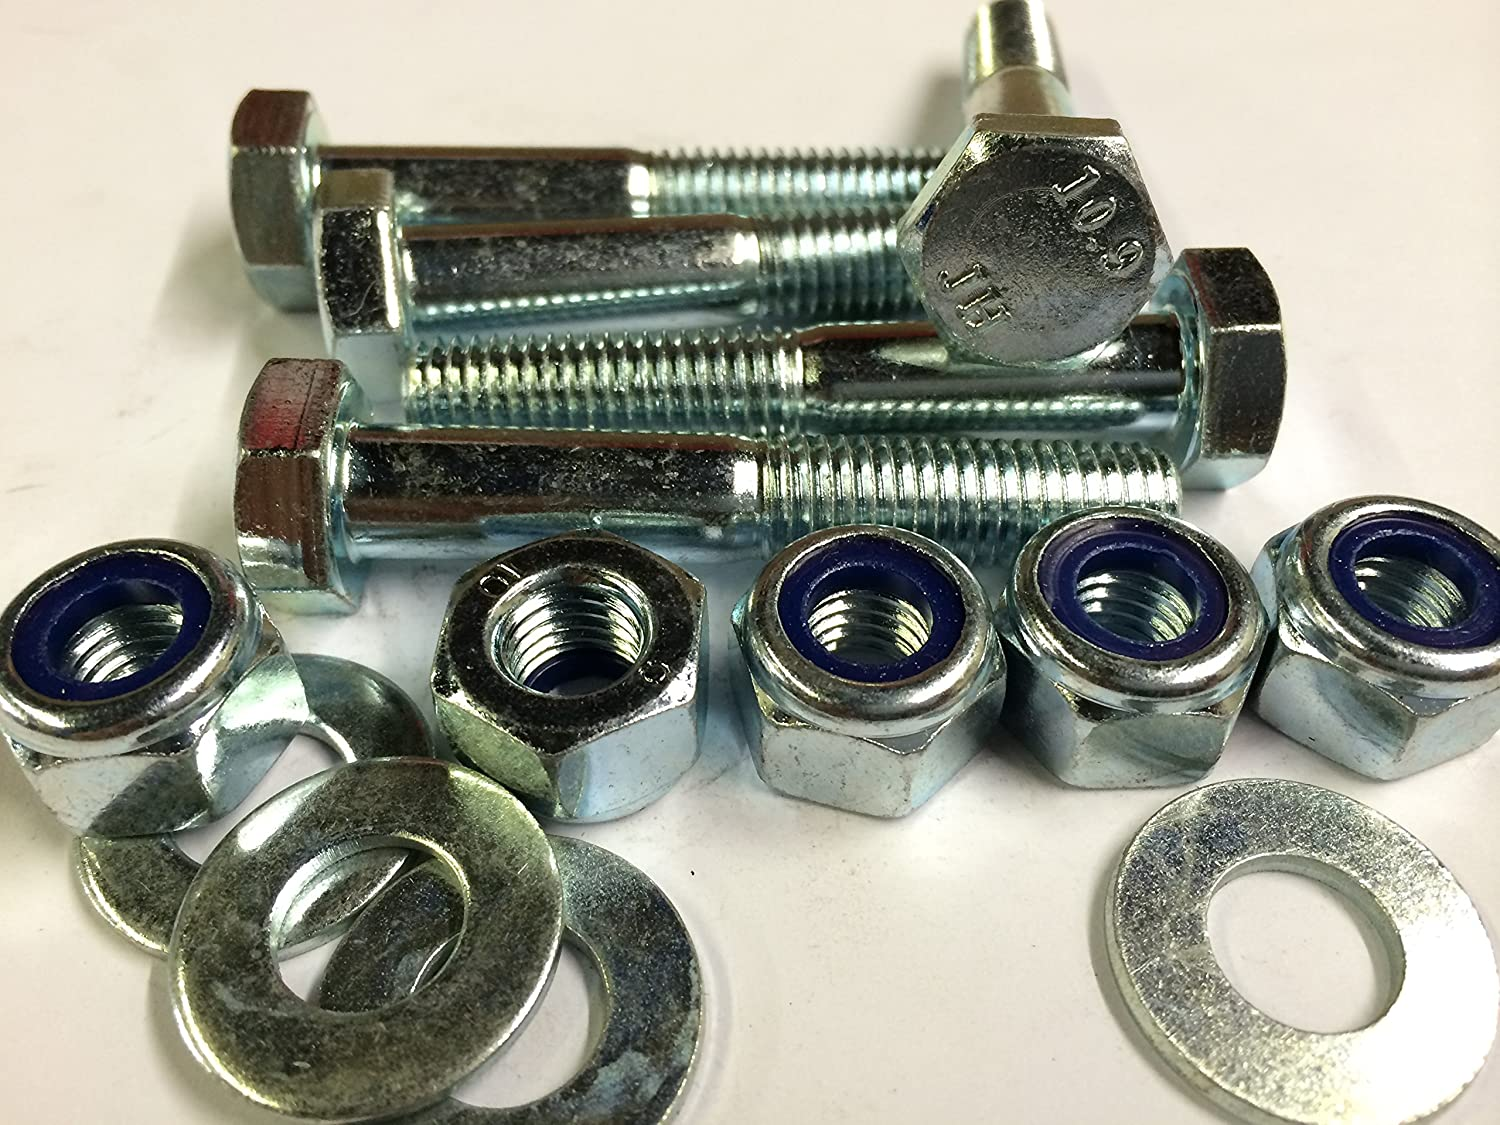 Pack of 5, Grass Topper, Diet Feeder PTO Shaft Shear Bolts with Nyloc Nuts and Washers, M10 x 50mm 10.9 Grade